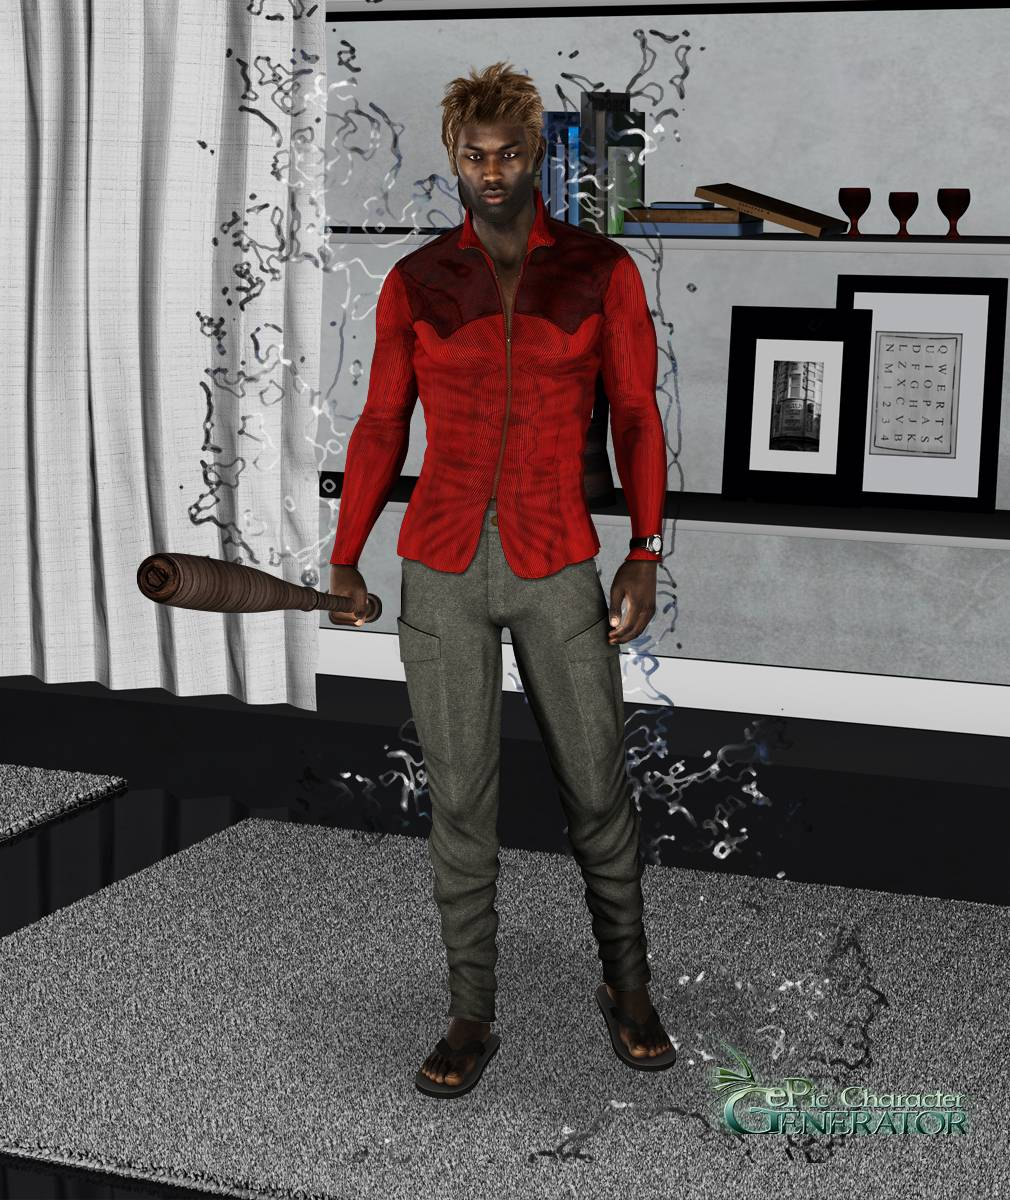 ePic Character Generator Season 2 Male Modern Screenshot 09